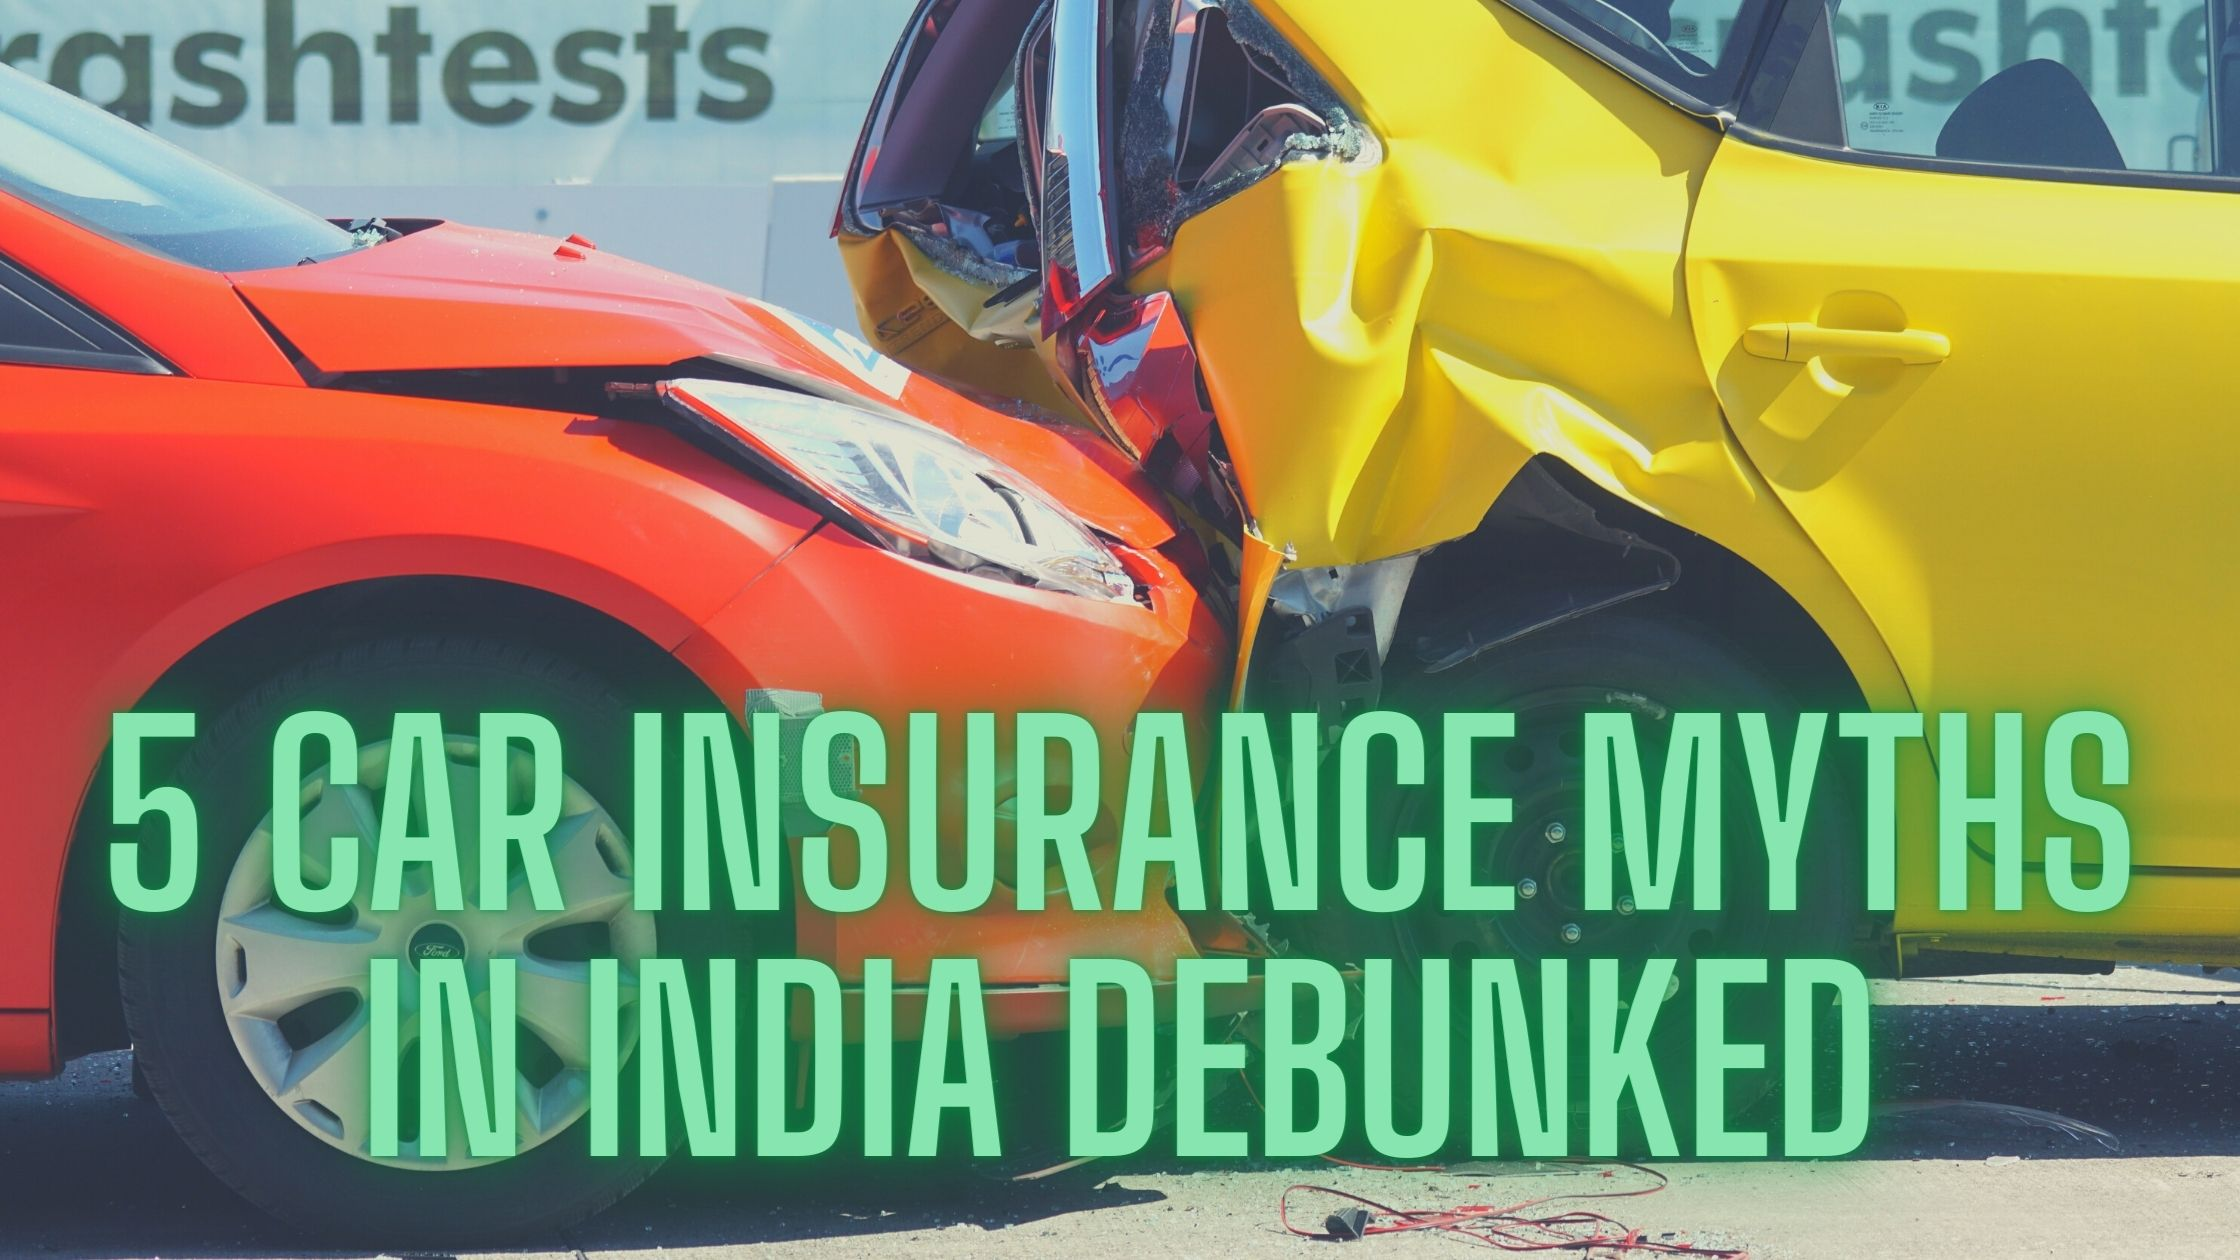 5 Car Insurance Myths in India Debunked